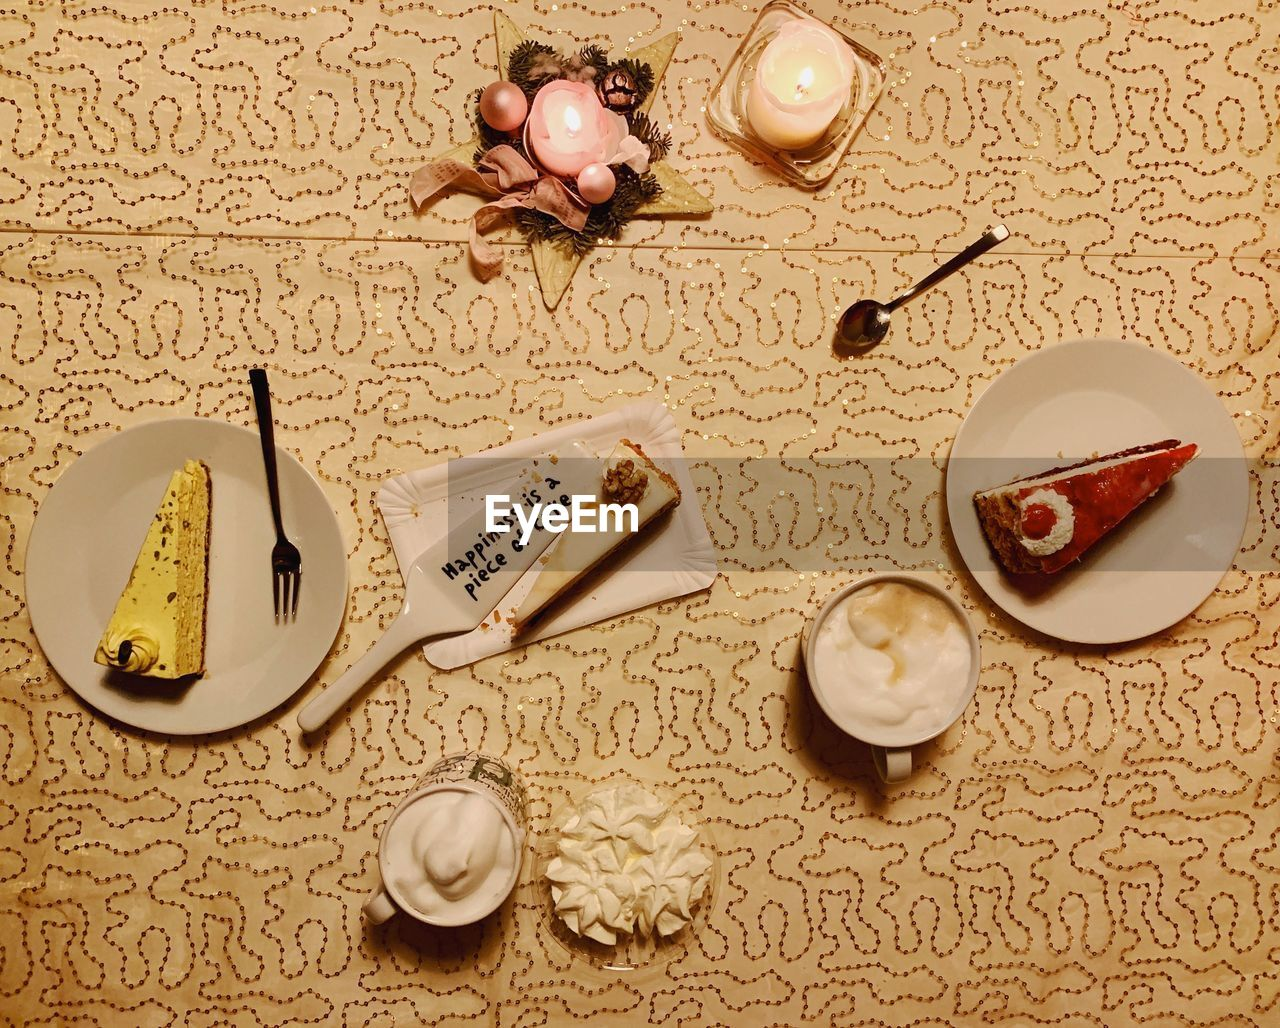 food, food and drink, still life, table, indoors, no people, freshness, high angle view, pattern, candle, large group of objects, text, plate, eating utensil, spoon, kitchen utensil, directly above, communication, drink, healthy eating, floral pattern